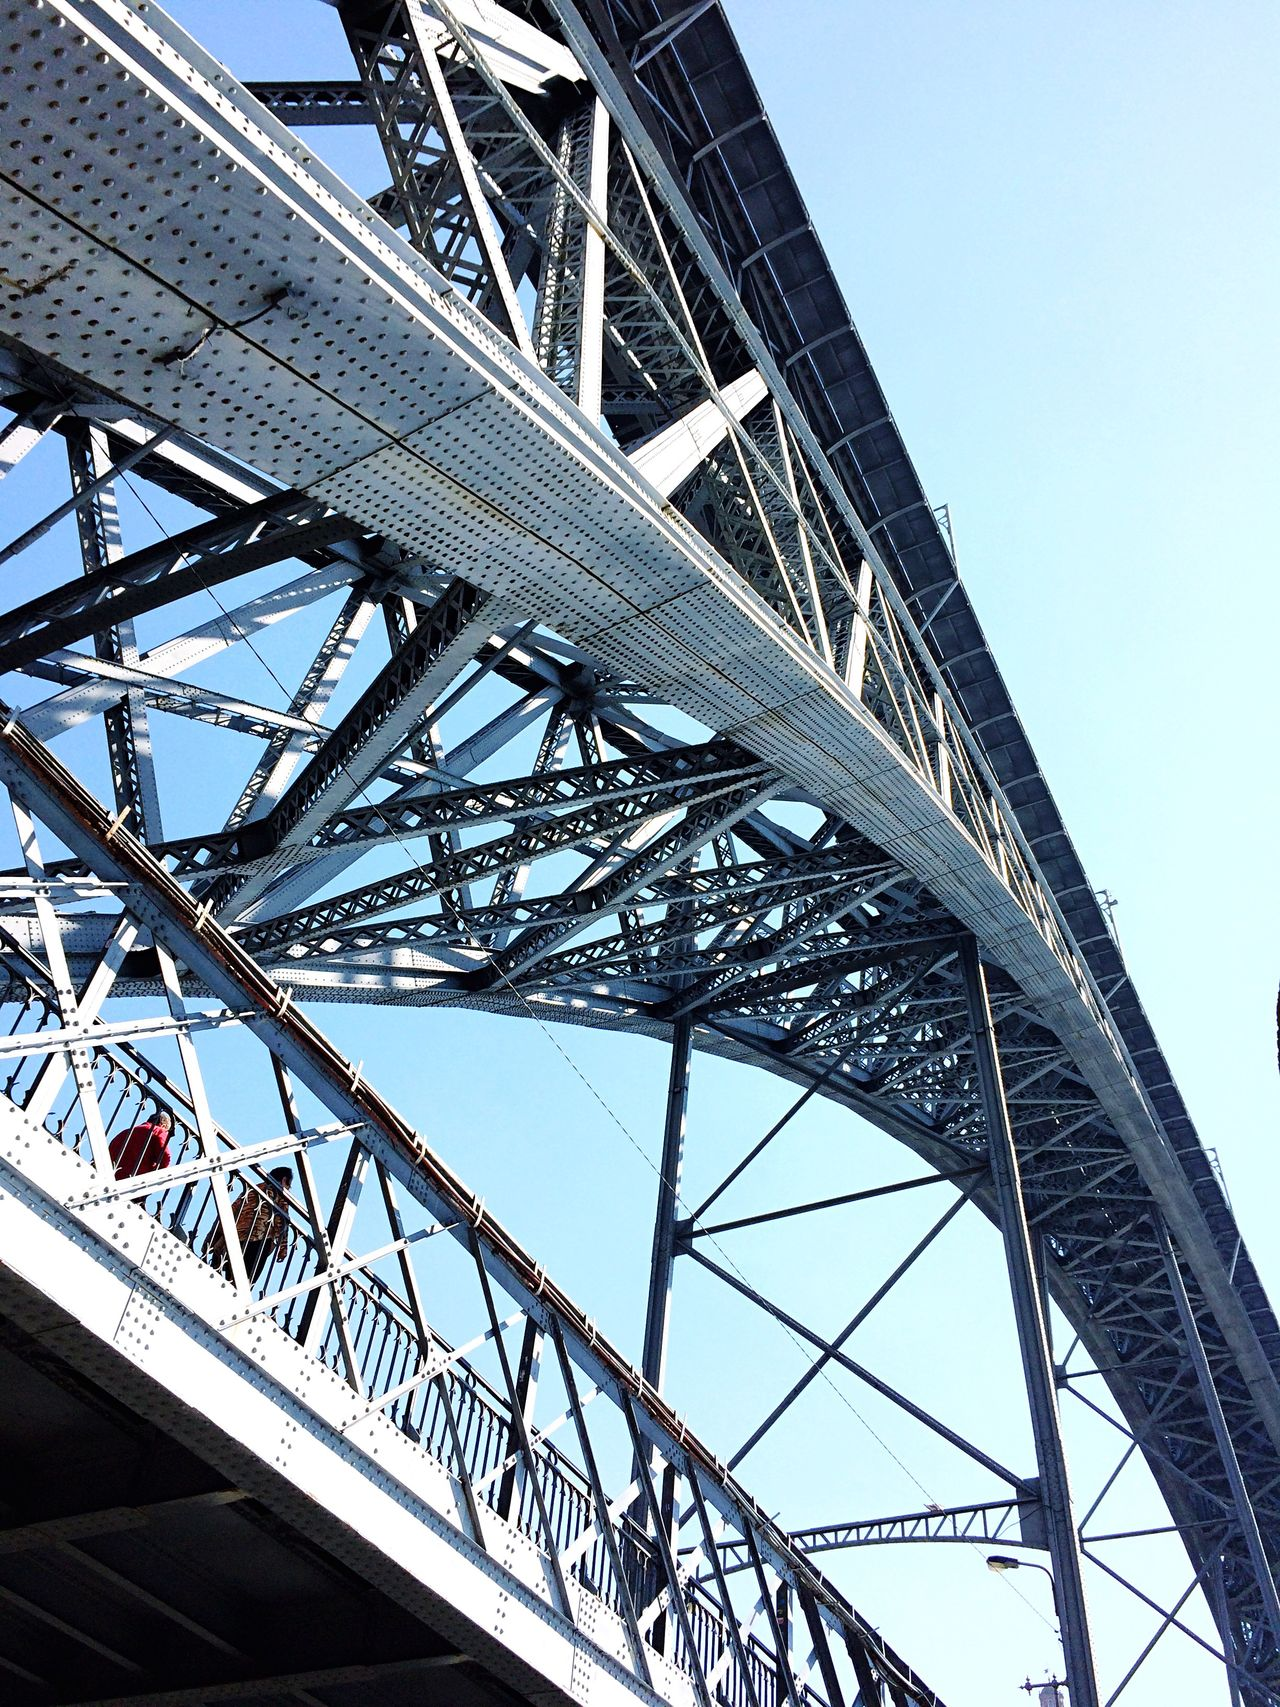 EyeEm Selects Bridge - Man Made Structure Architecture Built Structure Low Angle View Connection Metal Travel Destinations Travel Outdoors Transportation Day Sky Girder City People